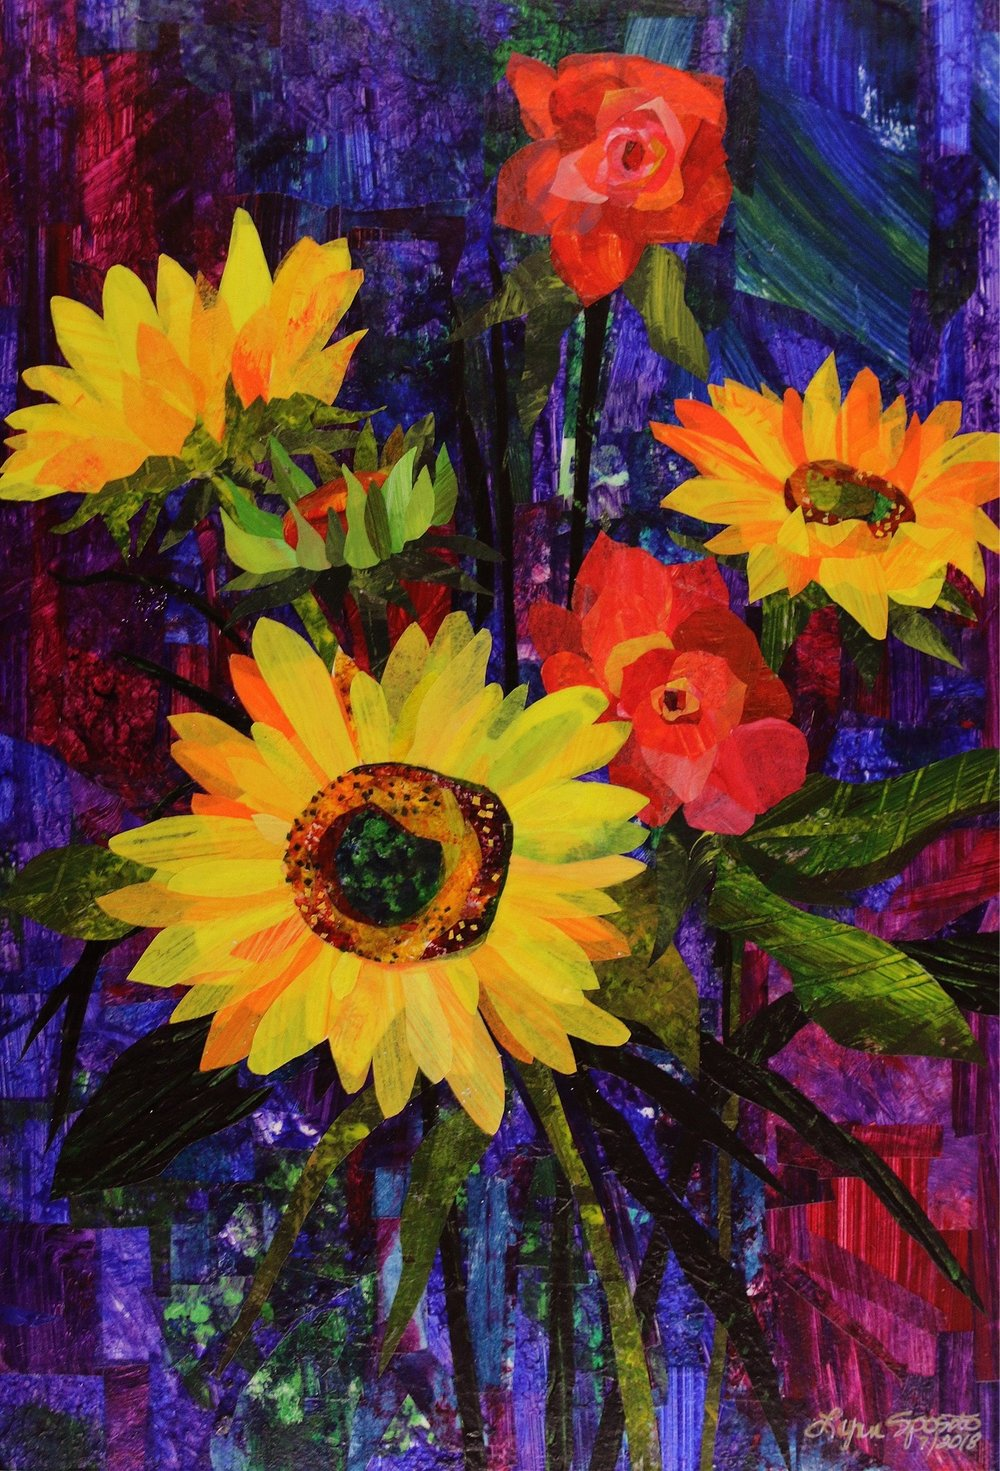 Sunflower Bouquet- Original SOLD, Giclee' prints available